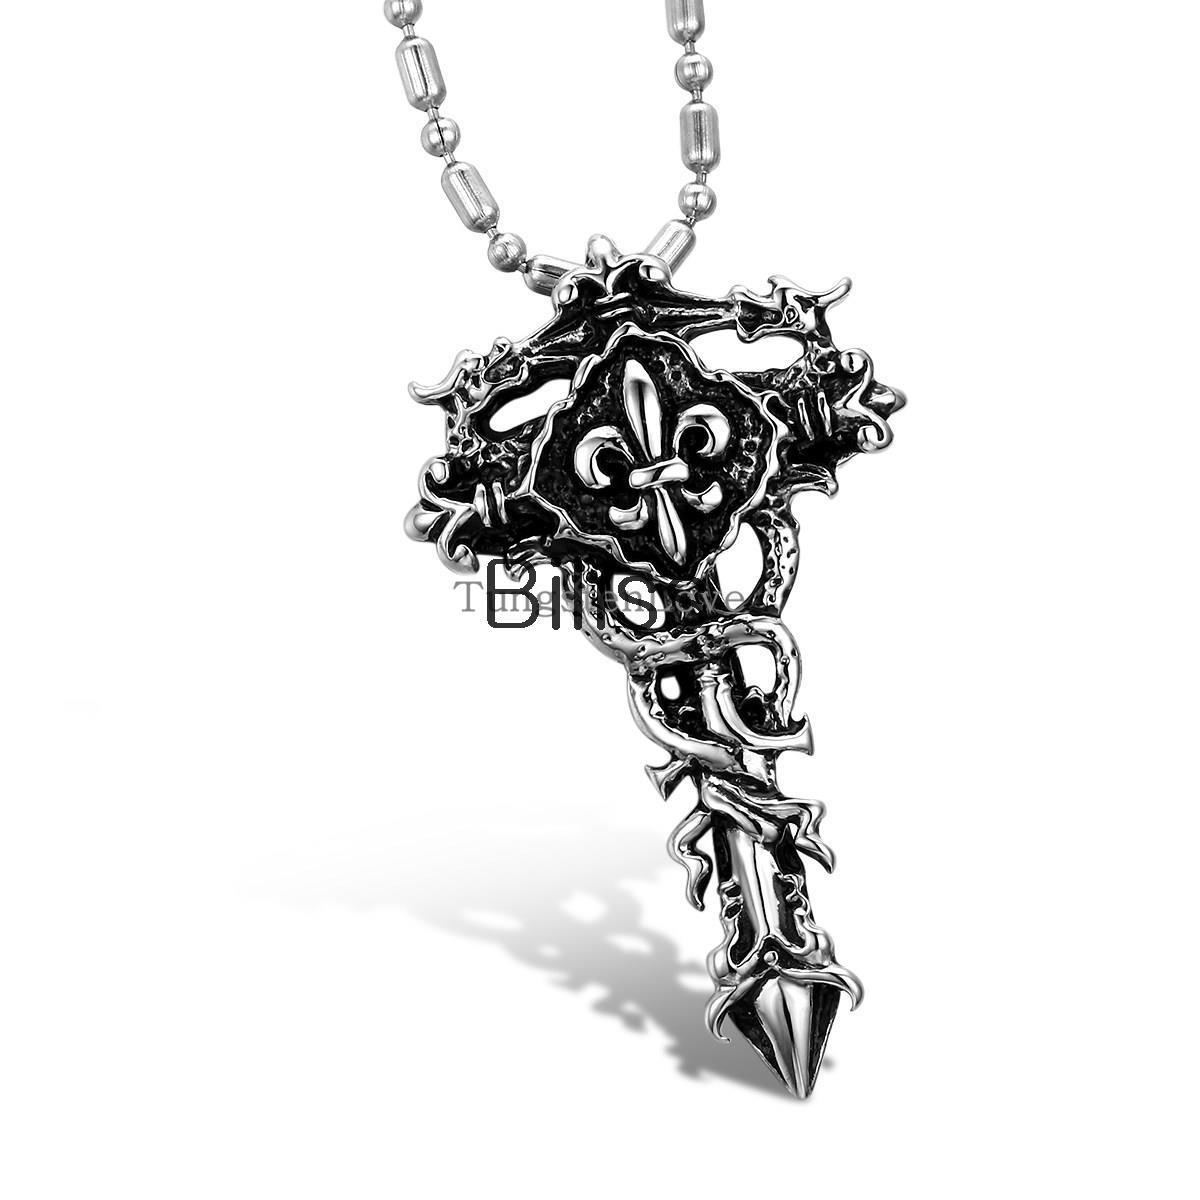 """Biliss Antique Style Stainless Steel Fleur De Lis Cross Pendant Necklace for Men 22"""" Chain Punk necklace Mens Easter days Gift(China (Mainland))"""